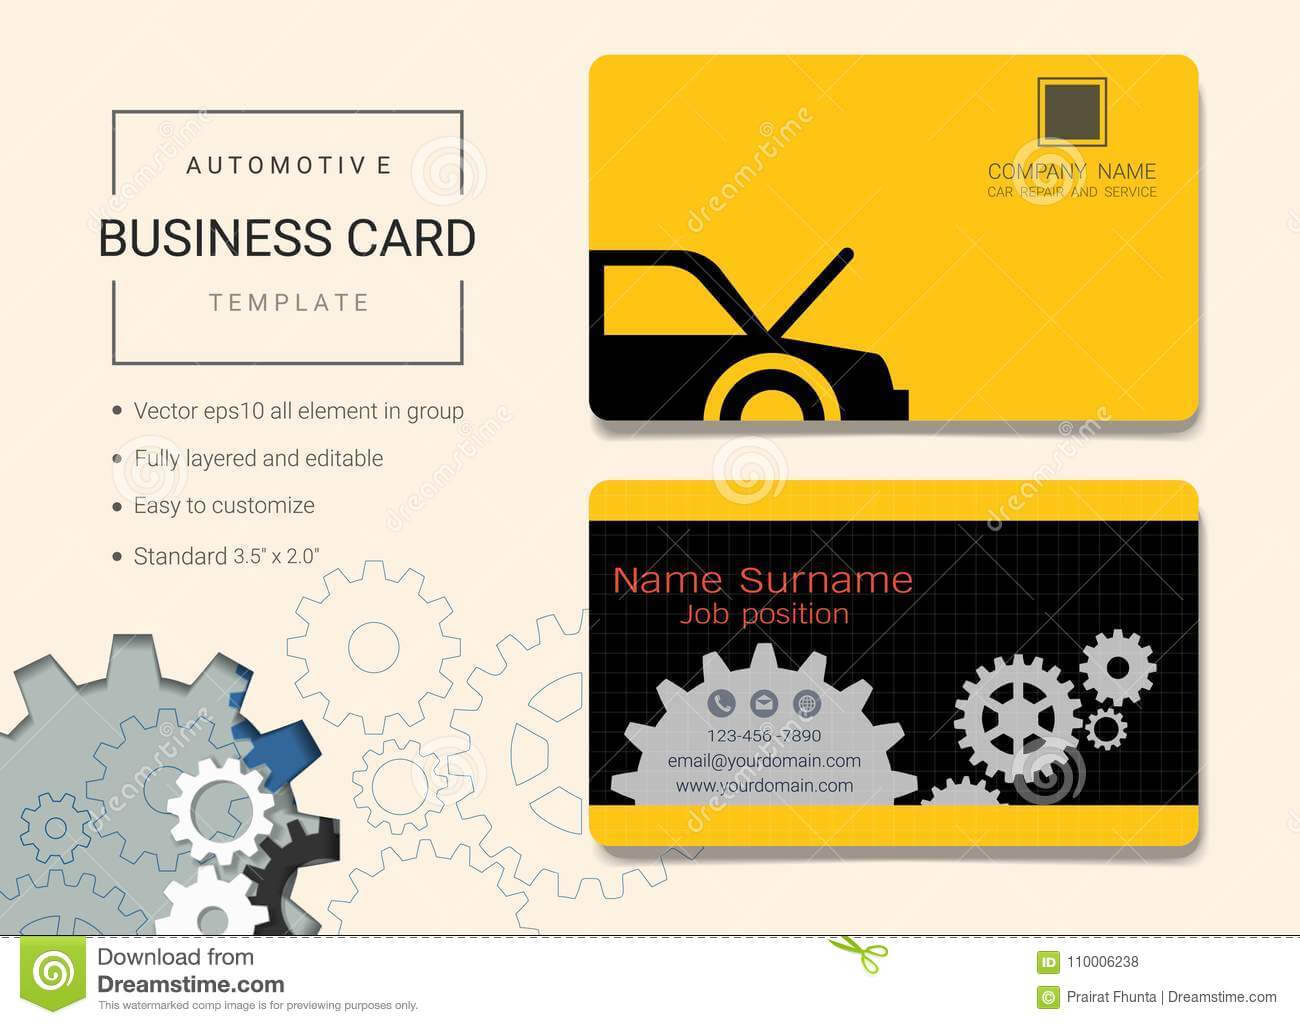 Automotive Business Card Or Name Card Template. Stock Vector Inside Automotive Business Card Templates